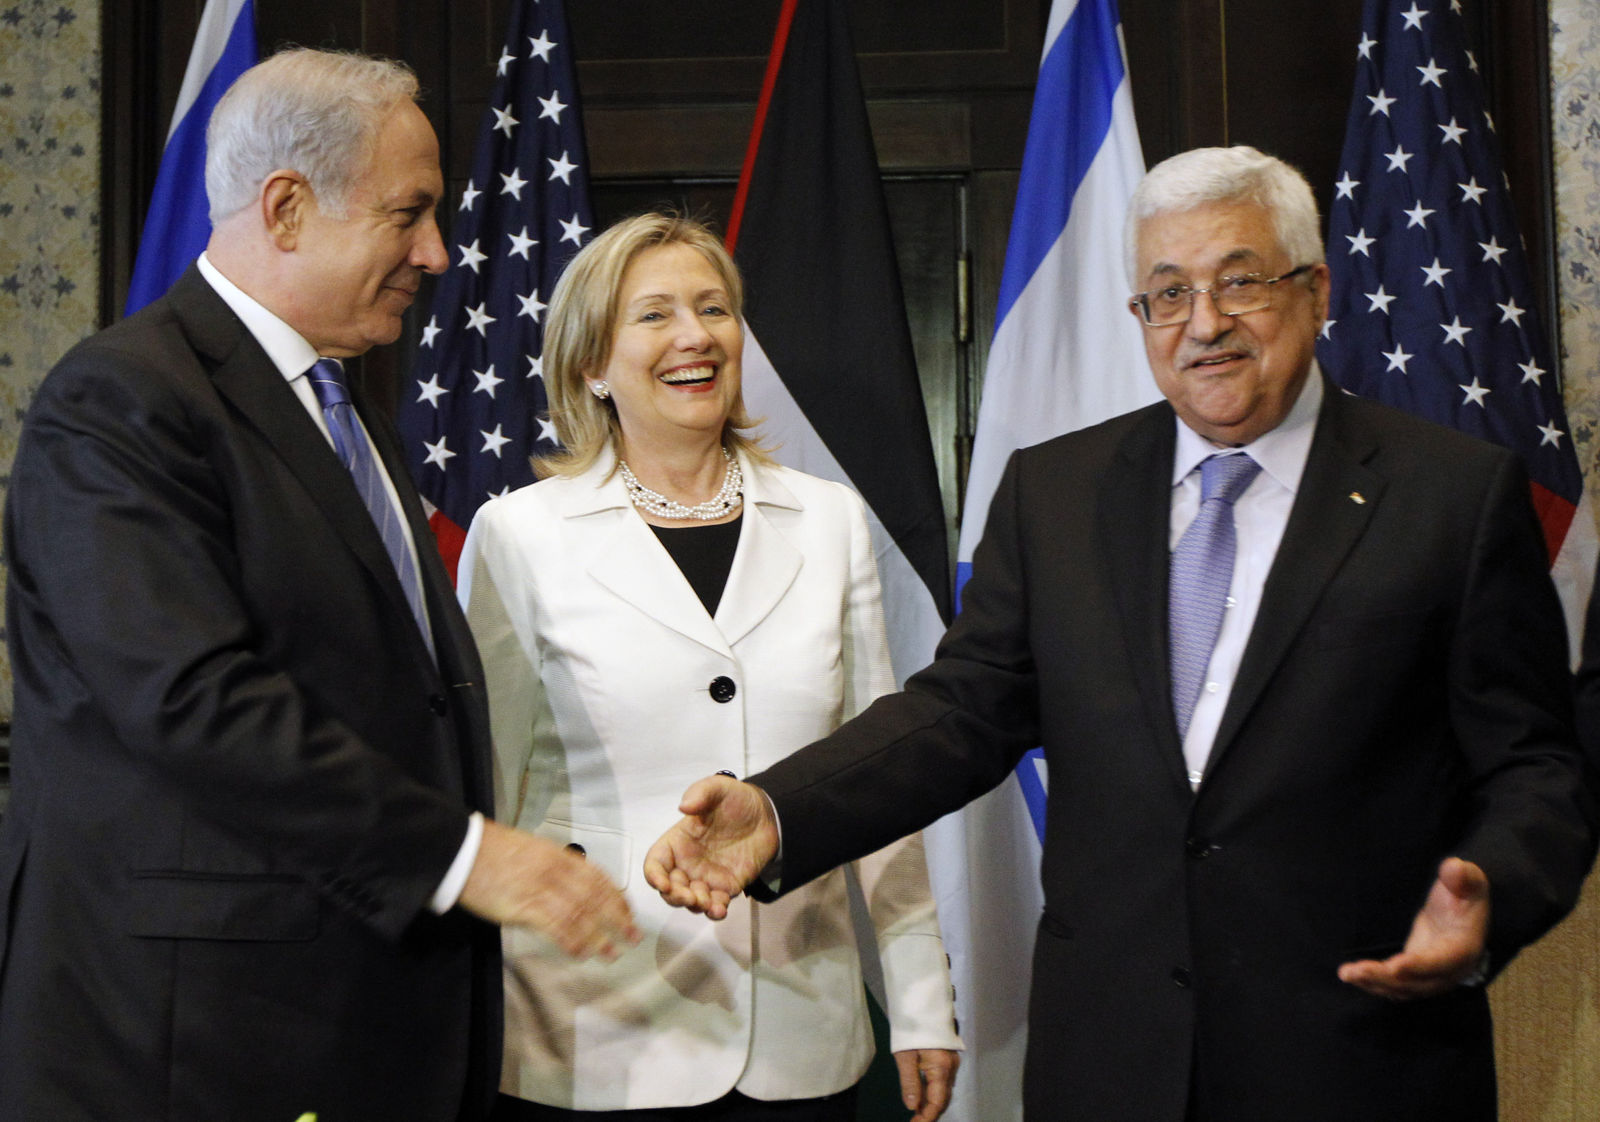 FILE - In this Sept. 14, 2010 file photo, Israeli Prime Minister Benjamin Netanyahu, left, US Secretary of State Hillary Rodham Clinton, and Palestinian President Mahmoud Abbas, meet in Sharm El-Sheikh, Egypt. (AP Photo/Alex Brandon, Pool, File)